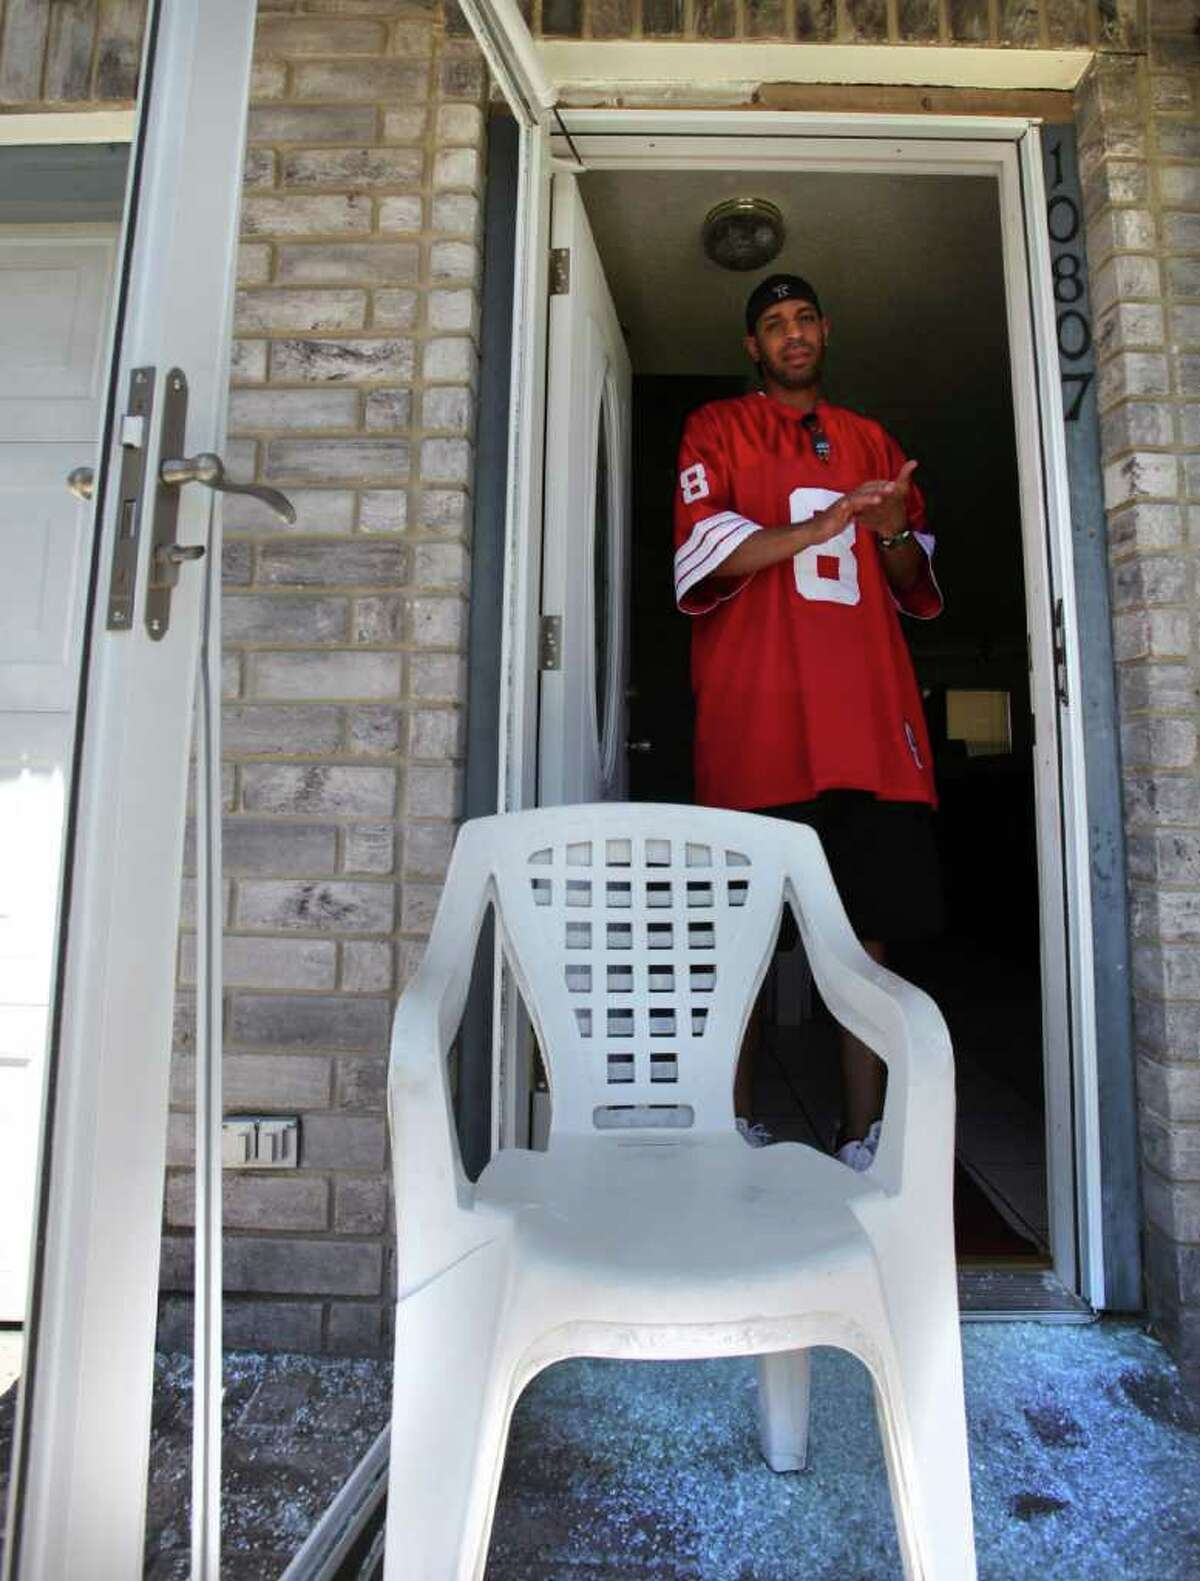 Kenneth Watson looks out the door that was shattered during a struggle between police officers and Watson's nephew Pierre T. Abernathy who received multiple Tasings from police. Abernathy died in police custody during transport to SAPD. Thursday, August 4, 2011.